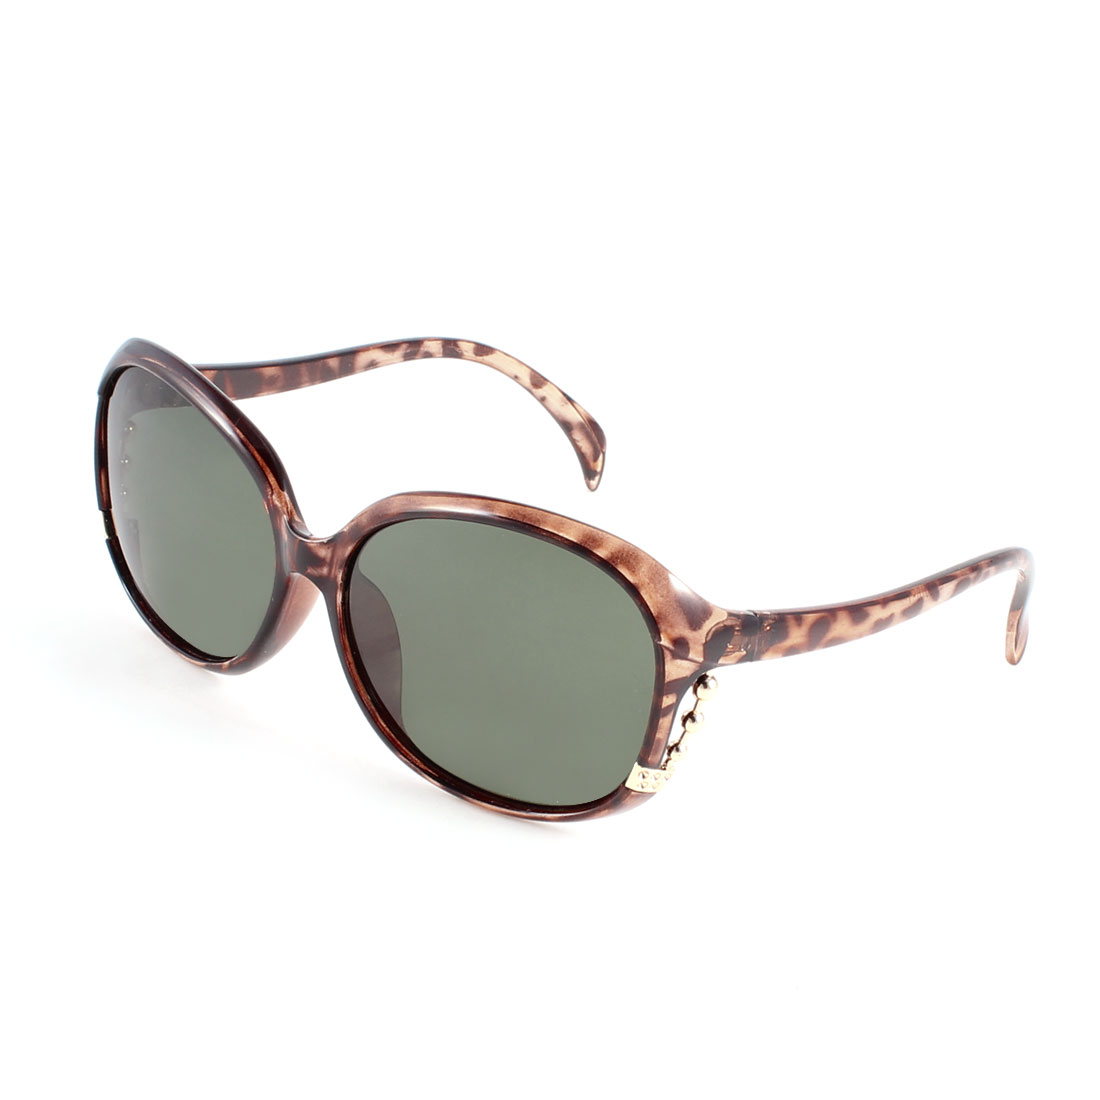 Ladies Metal Beads Accent Teardrop Lens Eyeglasses Polarized Sunglasses Brown